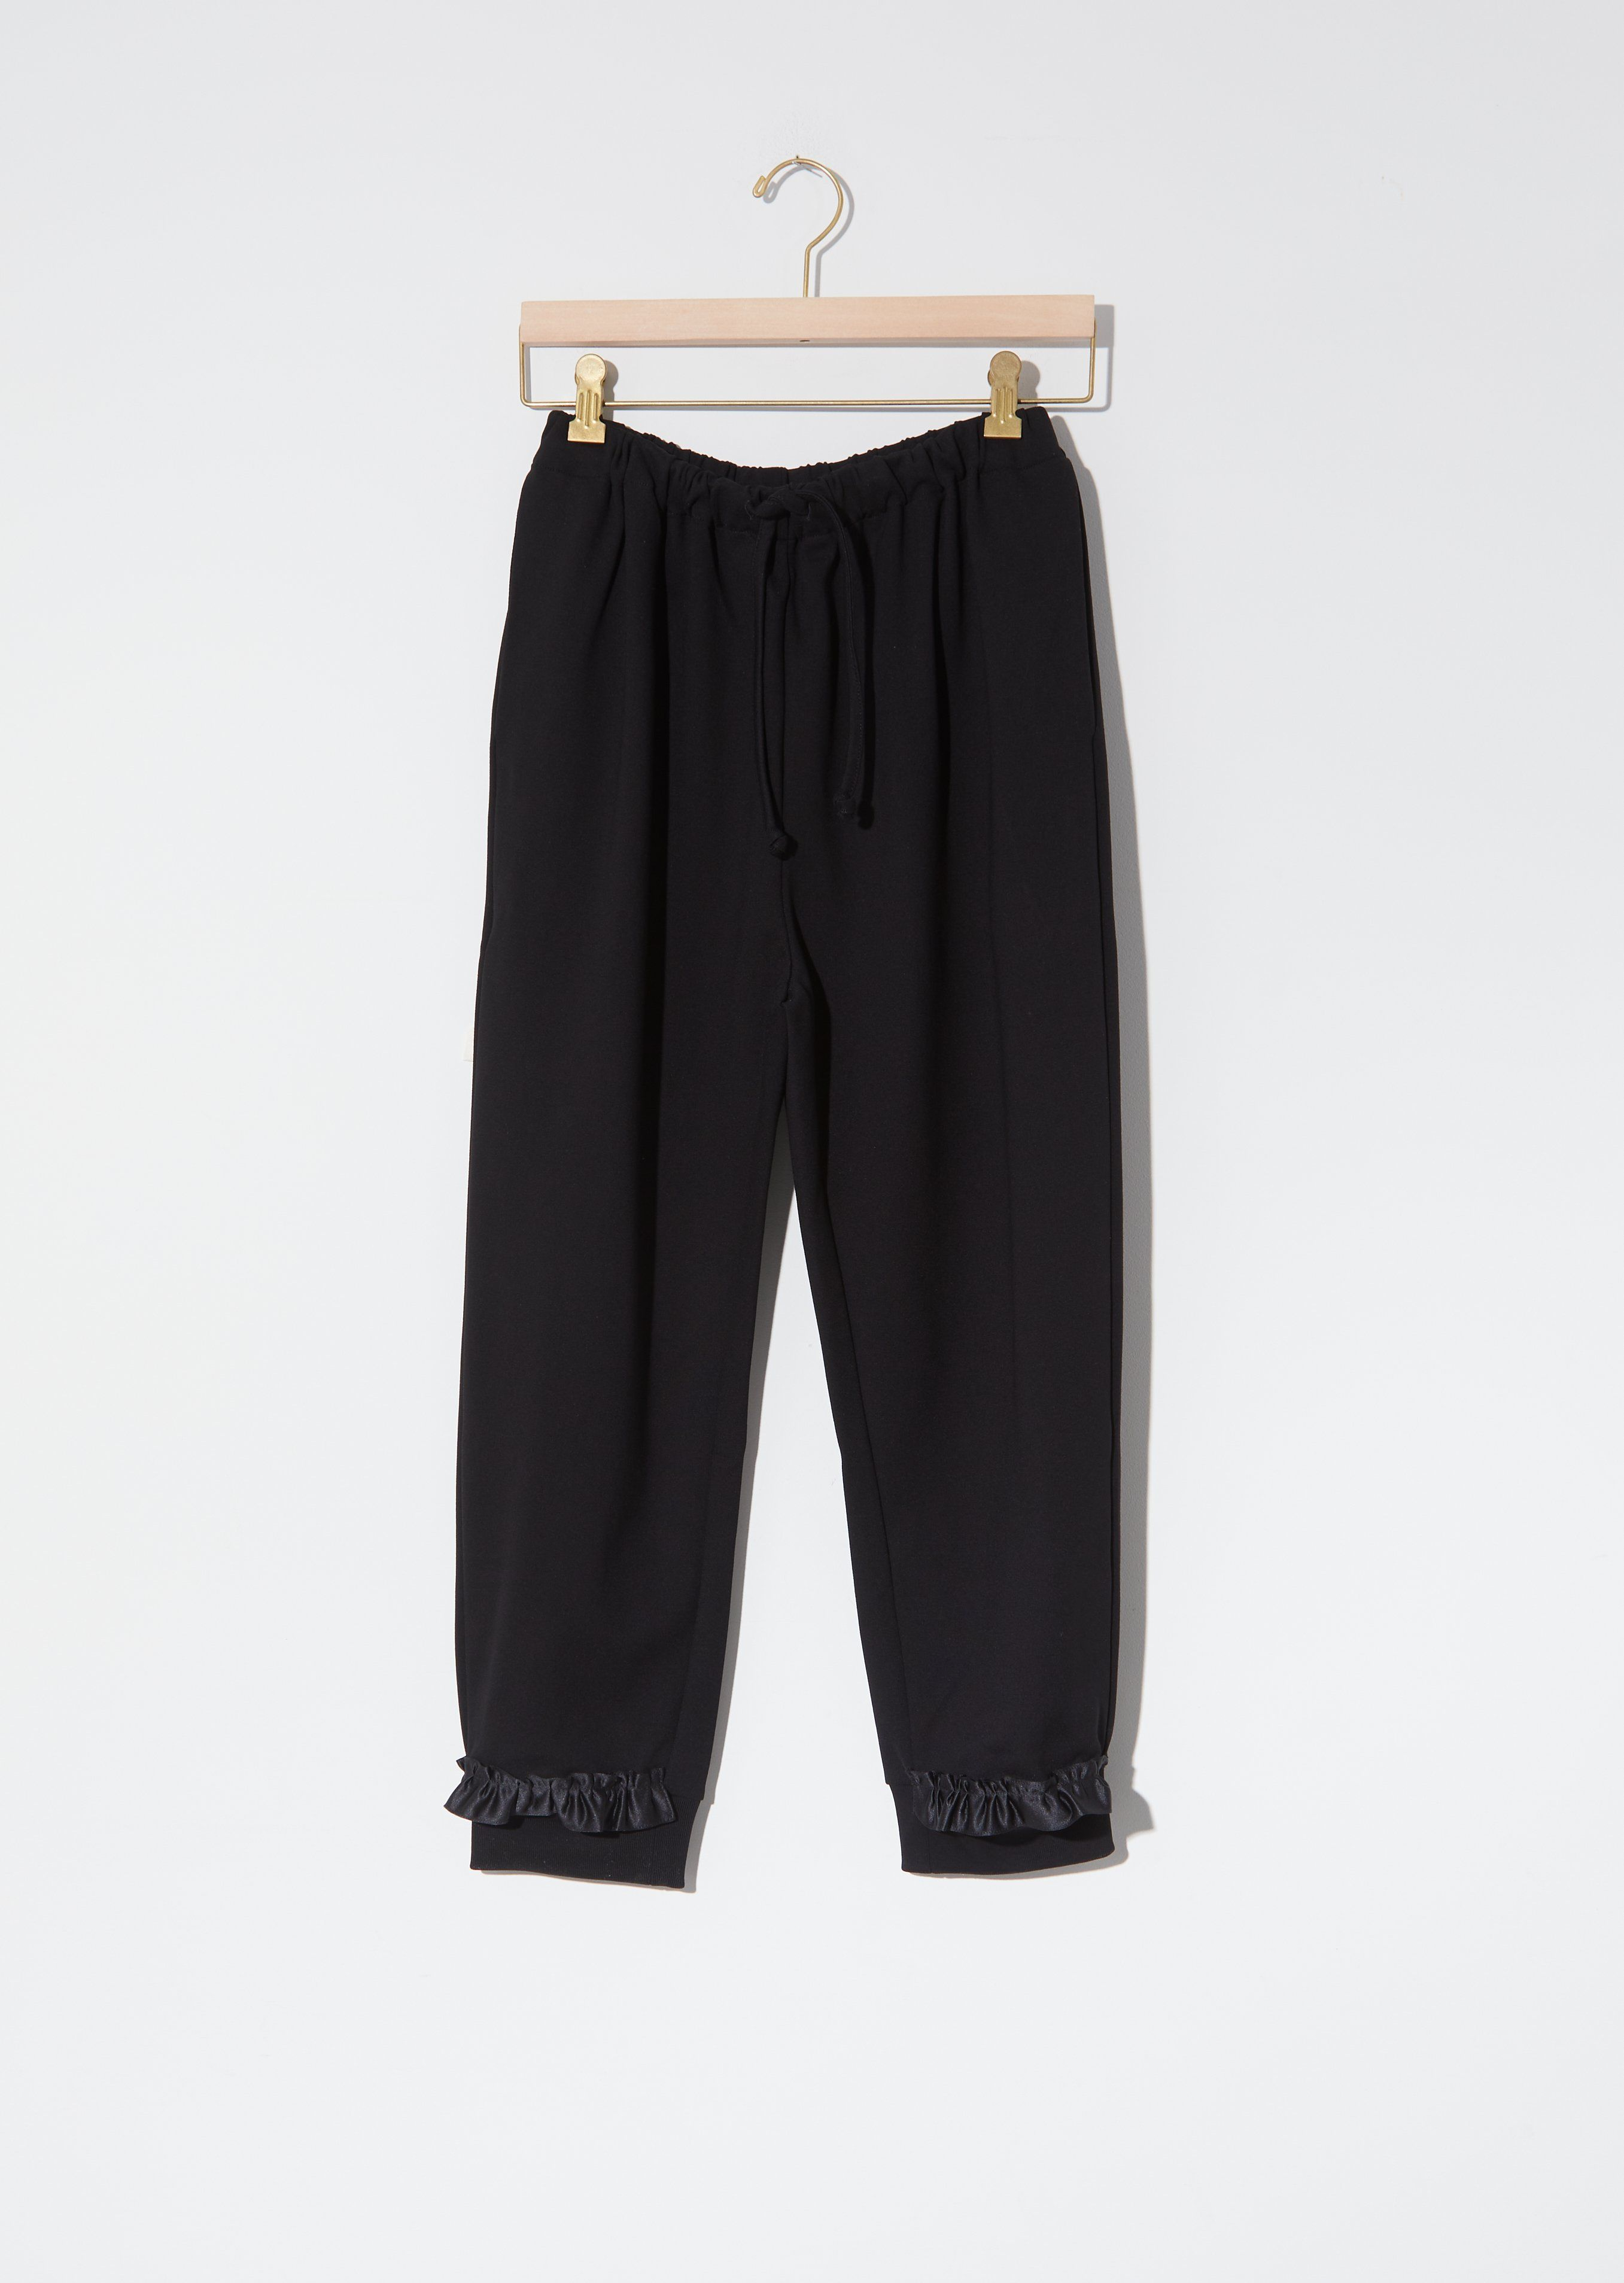 Simone Rocha Jersey Drop Bite Jogging Pants in Black. Cropped sweatpants with elasticated drawcord waistband and featuring tonal satin ruffle trim with cut-out detailing at hem. tapered silhouette, relaxed fit tonal drawcords slit detail at side seam Care: Machine Wash. Sizing: Universal (XS-L). Runs true to size, we recommend ordering your normal size. Size Extra Small measures 22.5